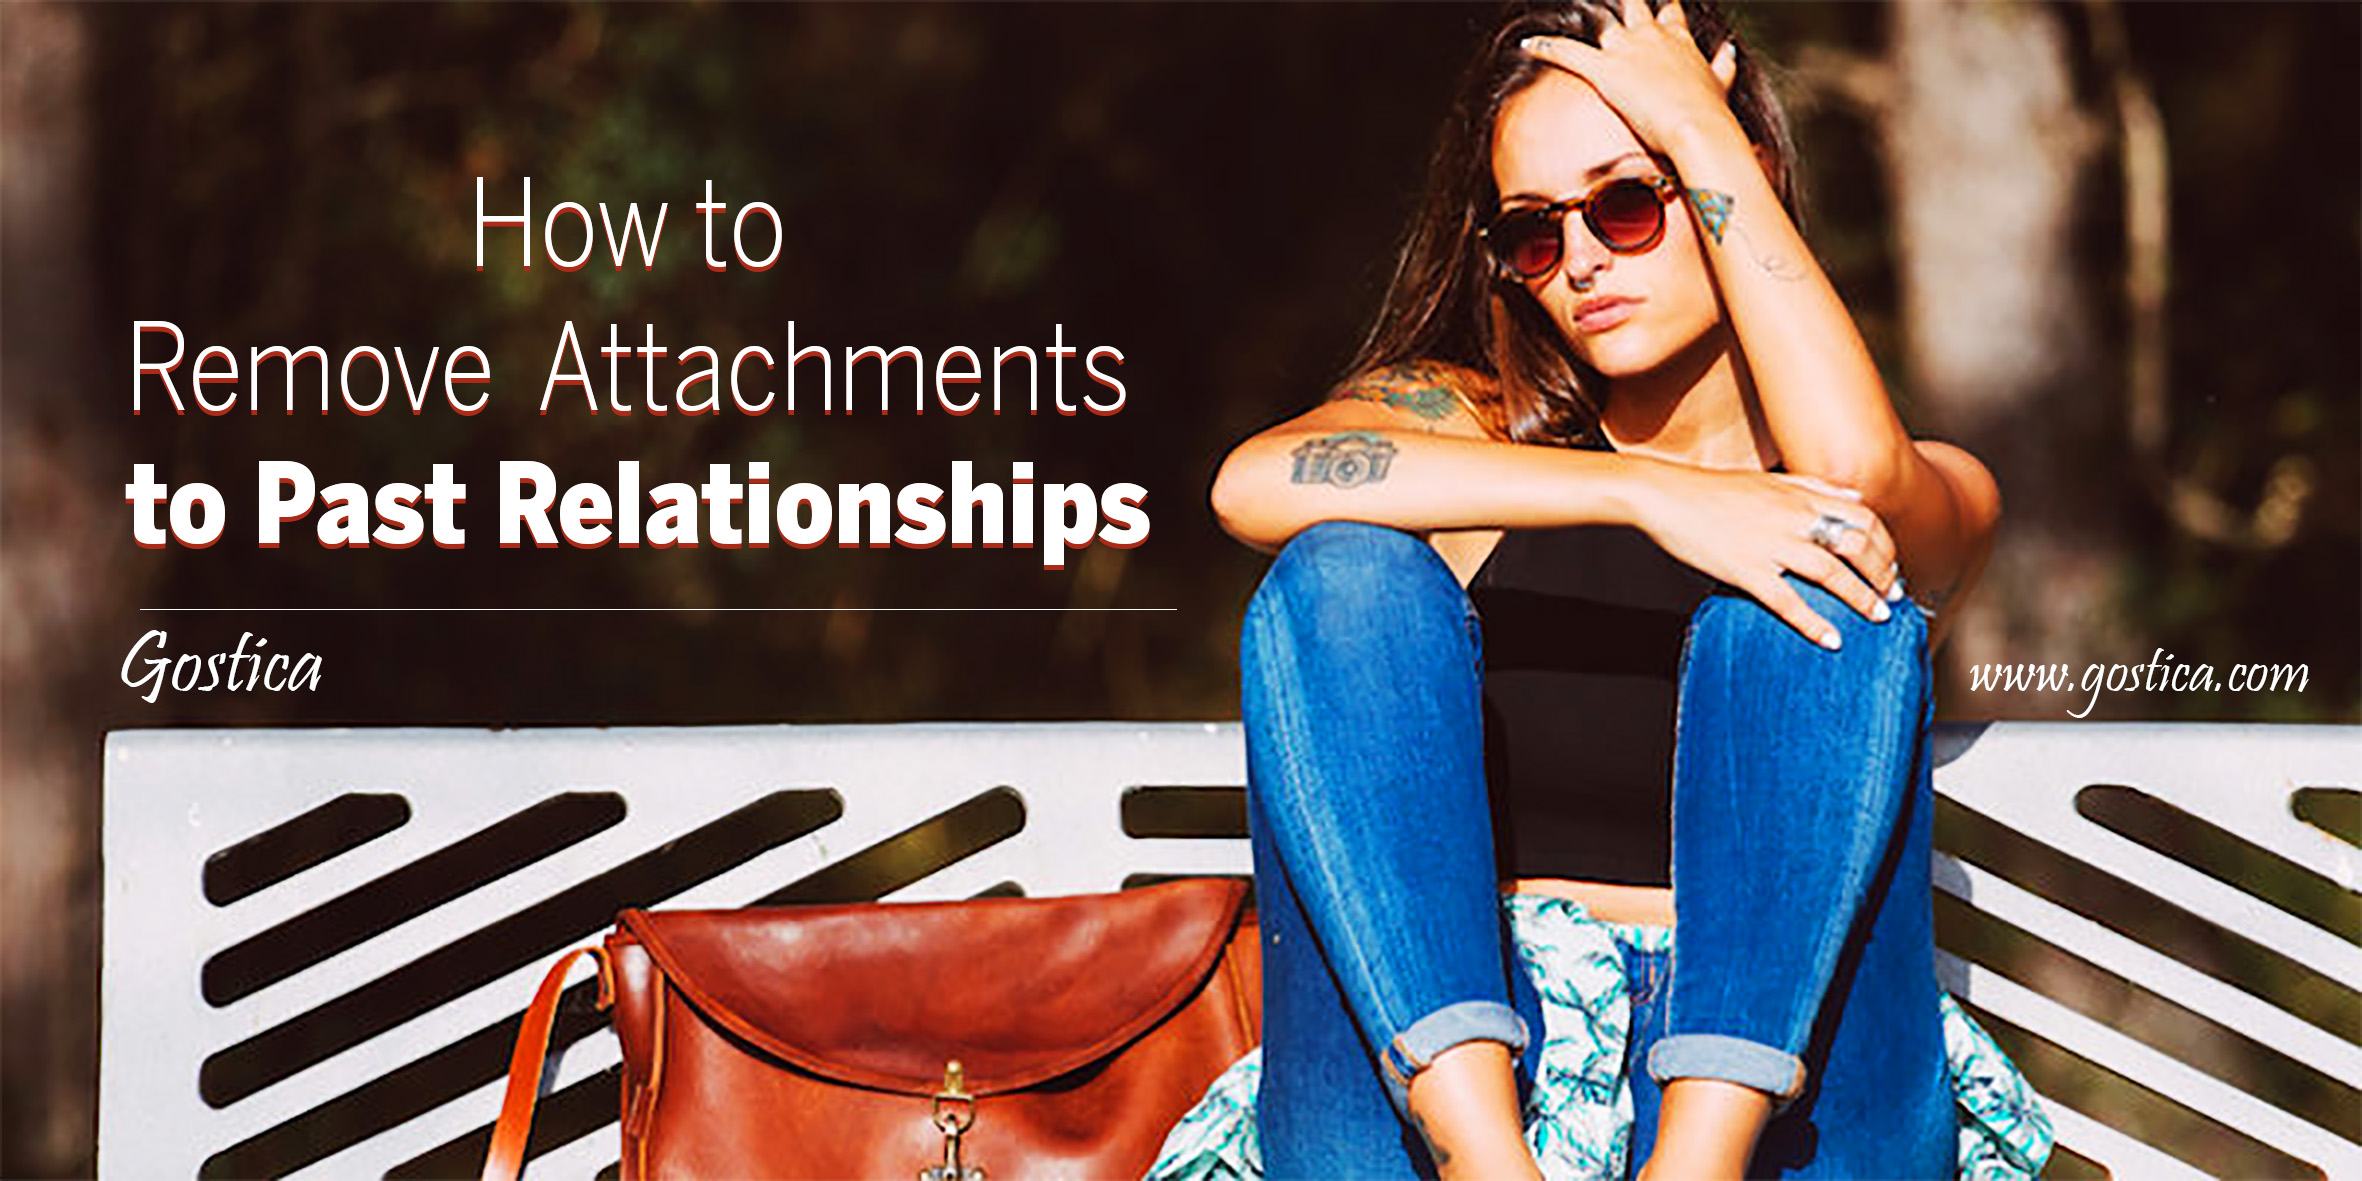 How-to-Remove-Attachments-to-Past-Relationships.jpg